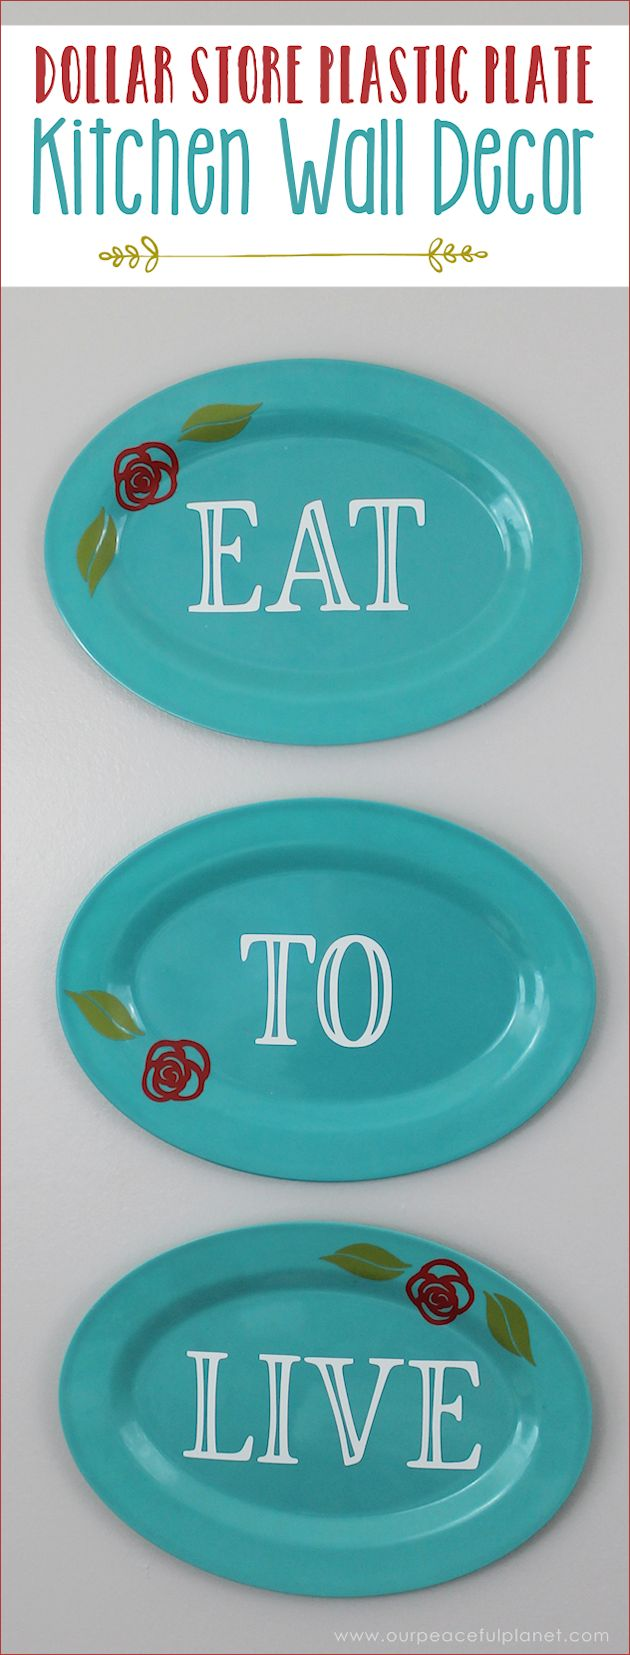 Deck the halls how to decorate on a budget family dollar - Darling Dollar Store Plastic Plate Kitchen Wall Decor